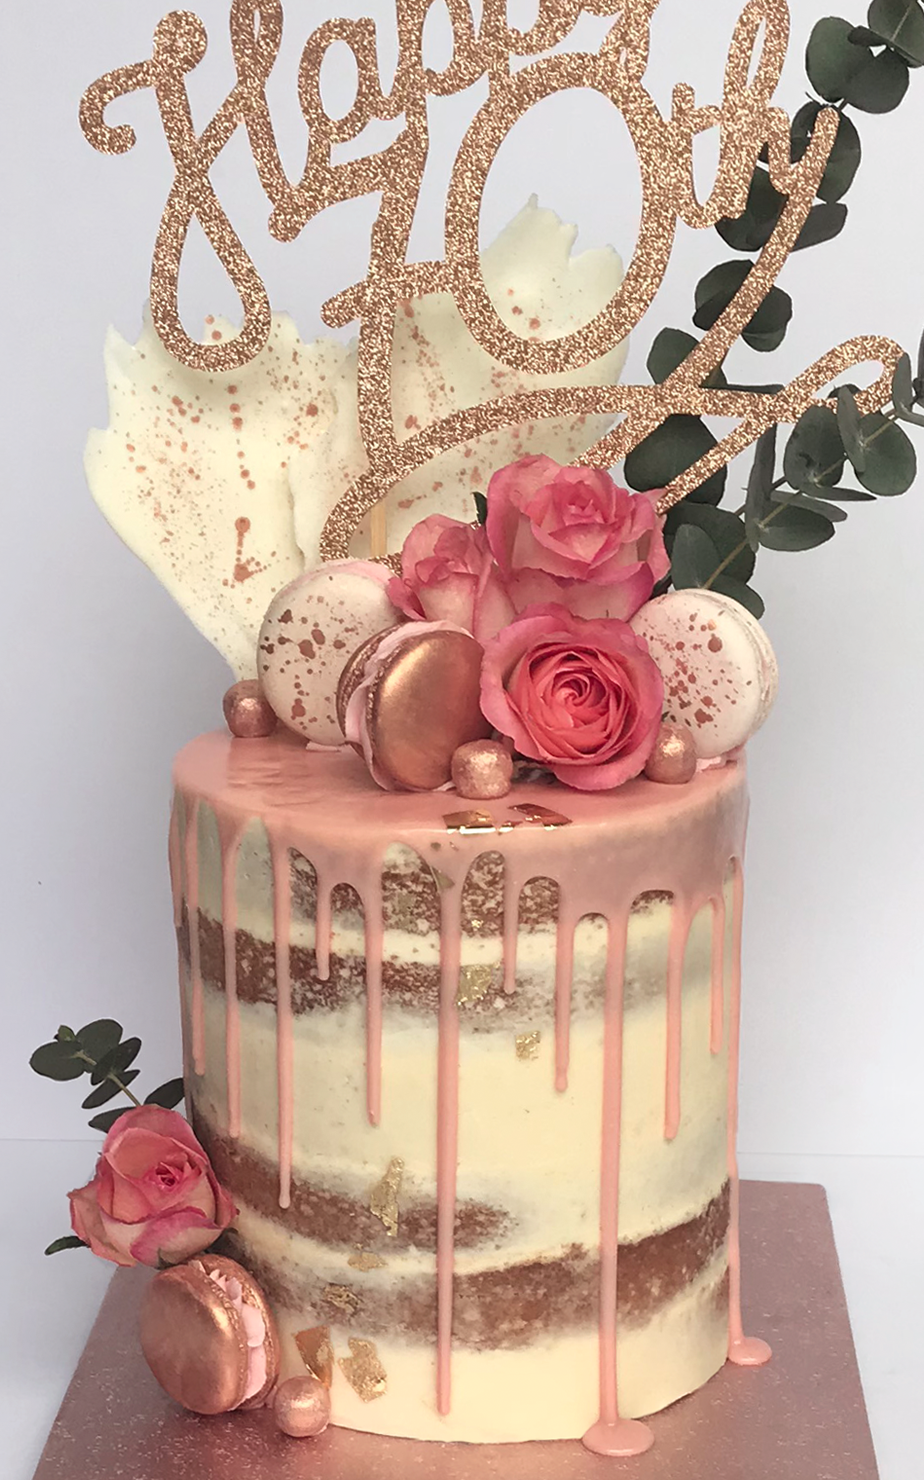 70th Birthday Cake, custom designer cakes - Antonia's Cakes